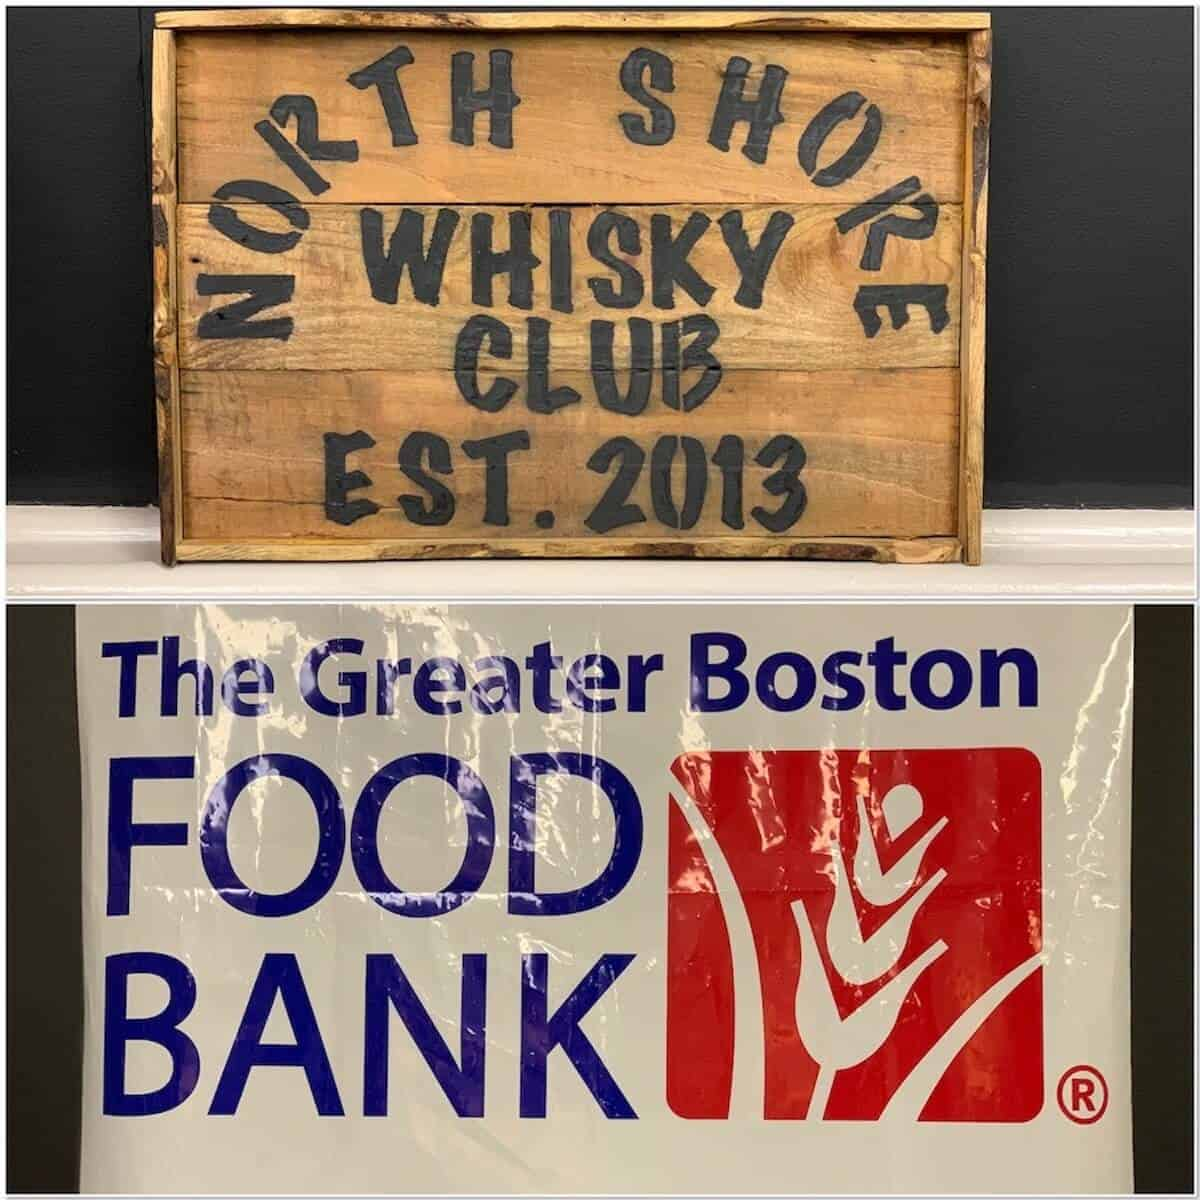 Collage of North Shore Whisky Club & Greater Boston Food Bank banners.